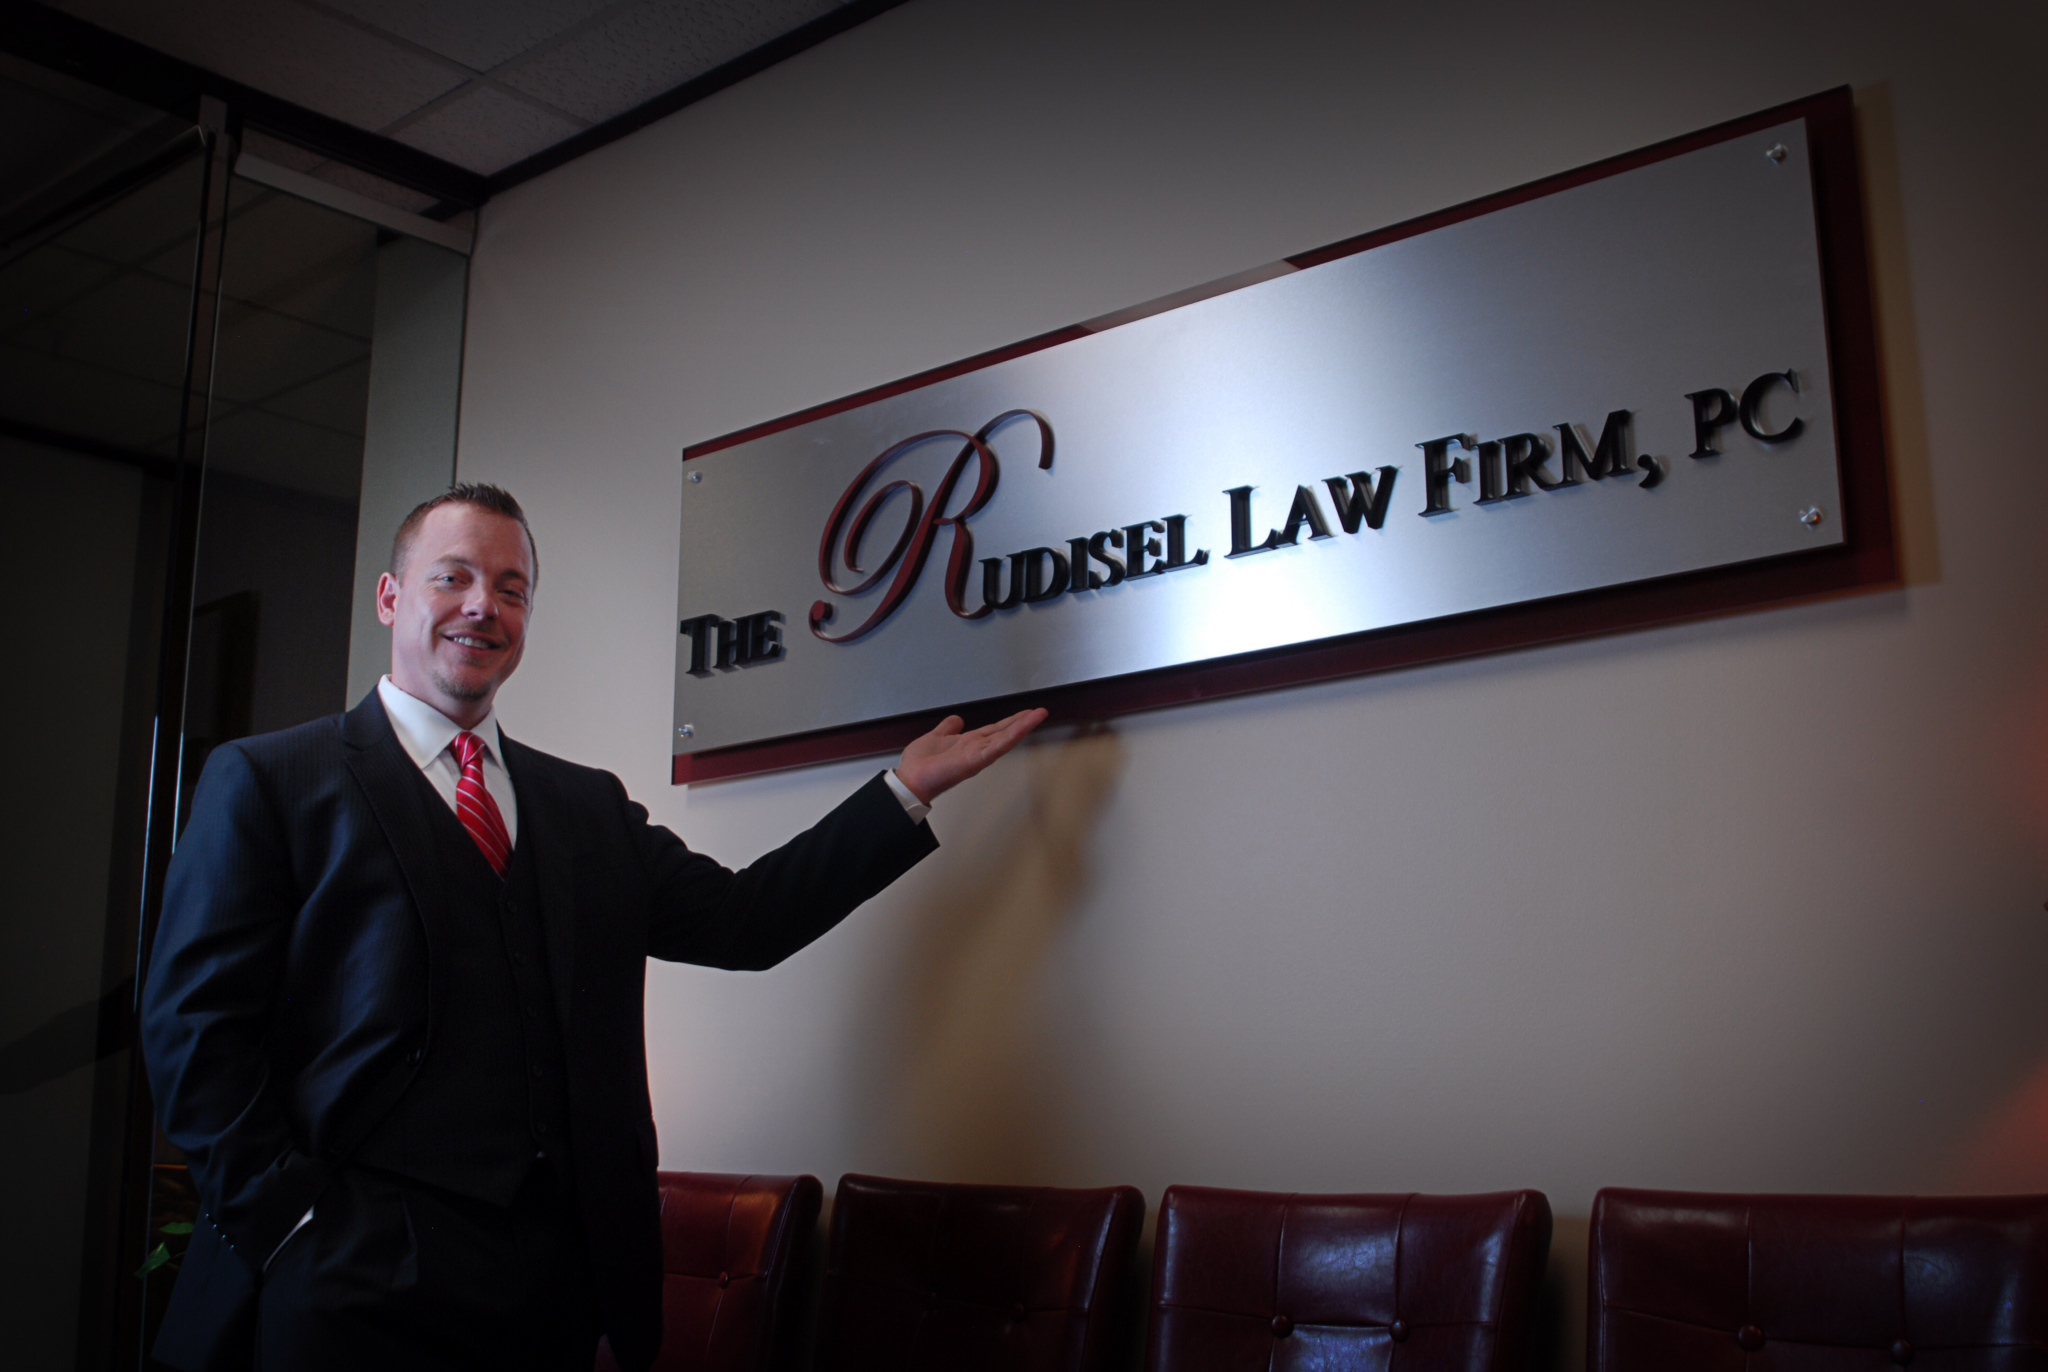 photo of The Rudisel Law Firm, P.C.